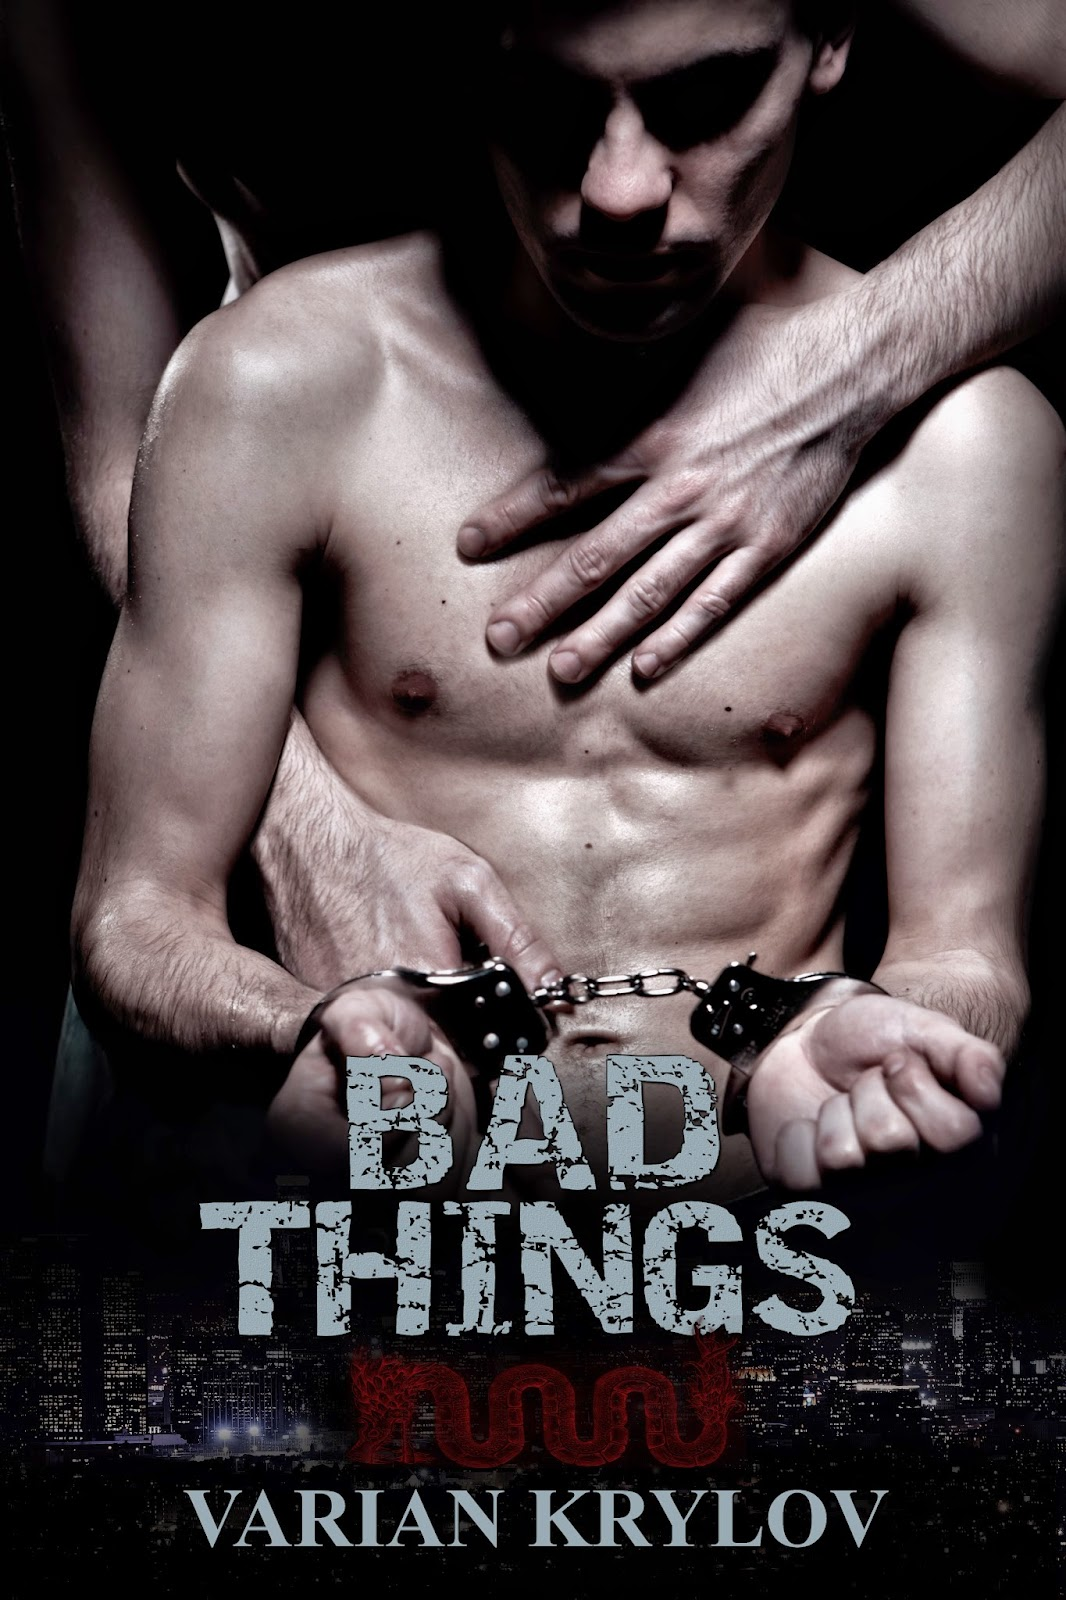 http://www.amazon.com/Bad-Things-Varian-Krylov-ebook/dp/B00MW6UA9G/ref=sr_1_1?s=digital-text&ie=UTF8&qid=1408954203&sr=1-1&keywords=bad+things+krylov